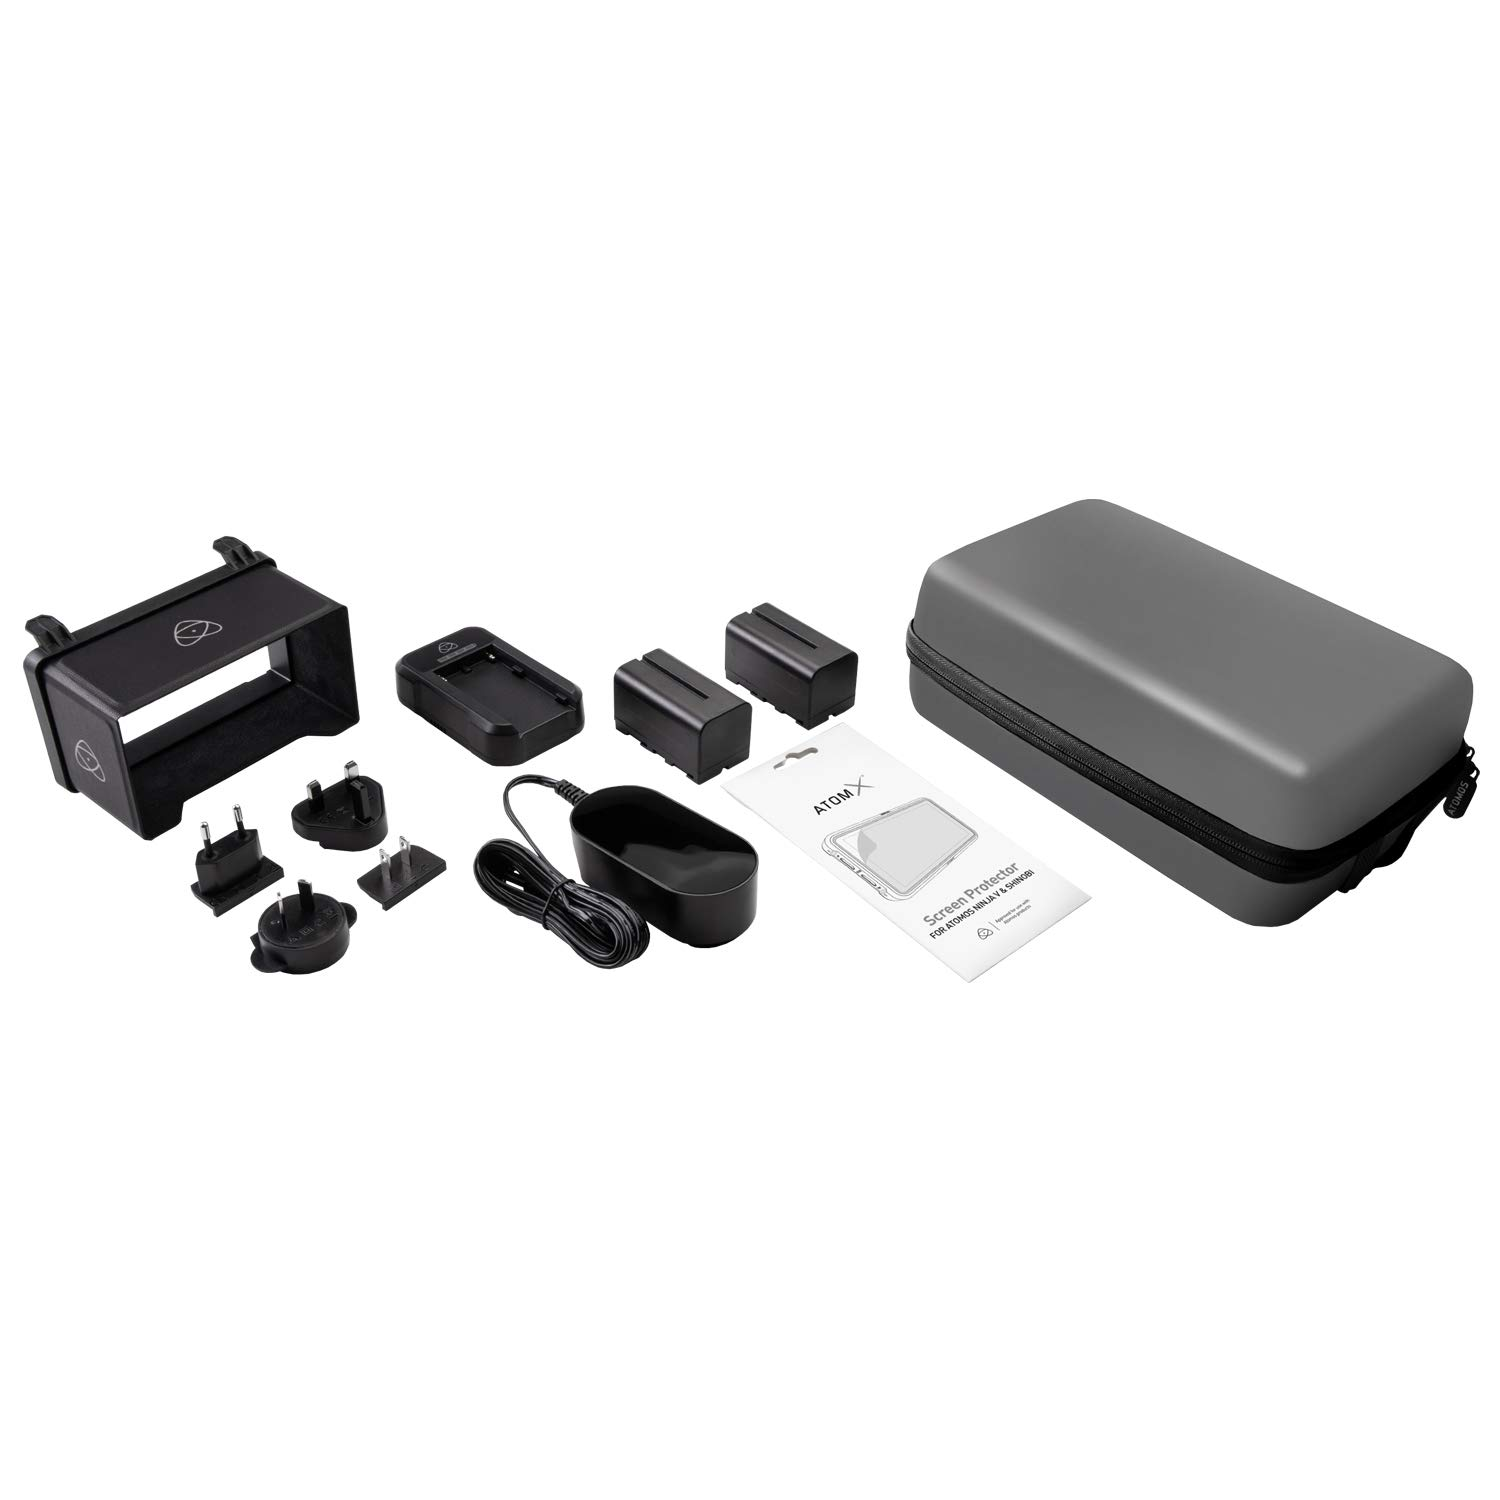 "Atomos 5"" Accessory Kit for Shinobi, Shinobi SDI and Ninja V Monitors"